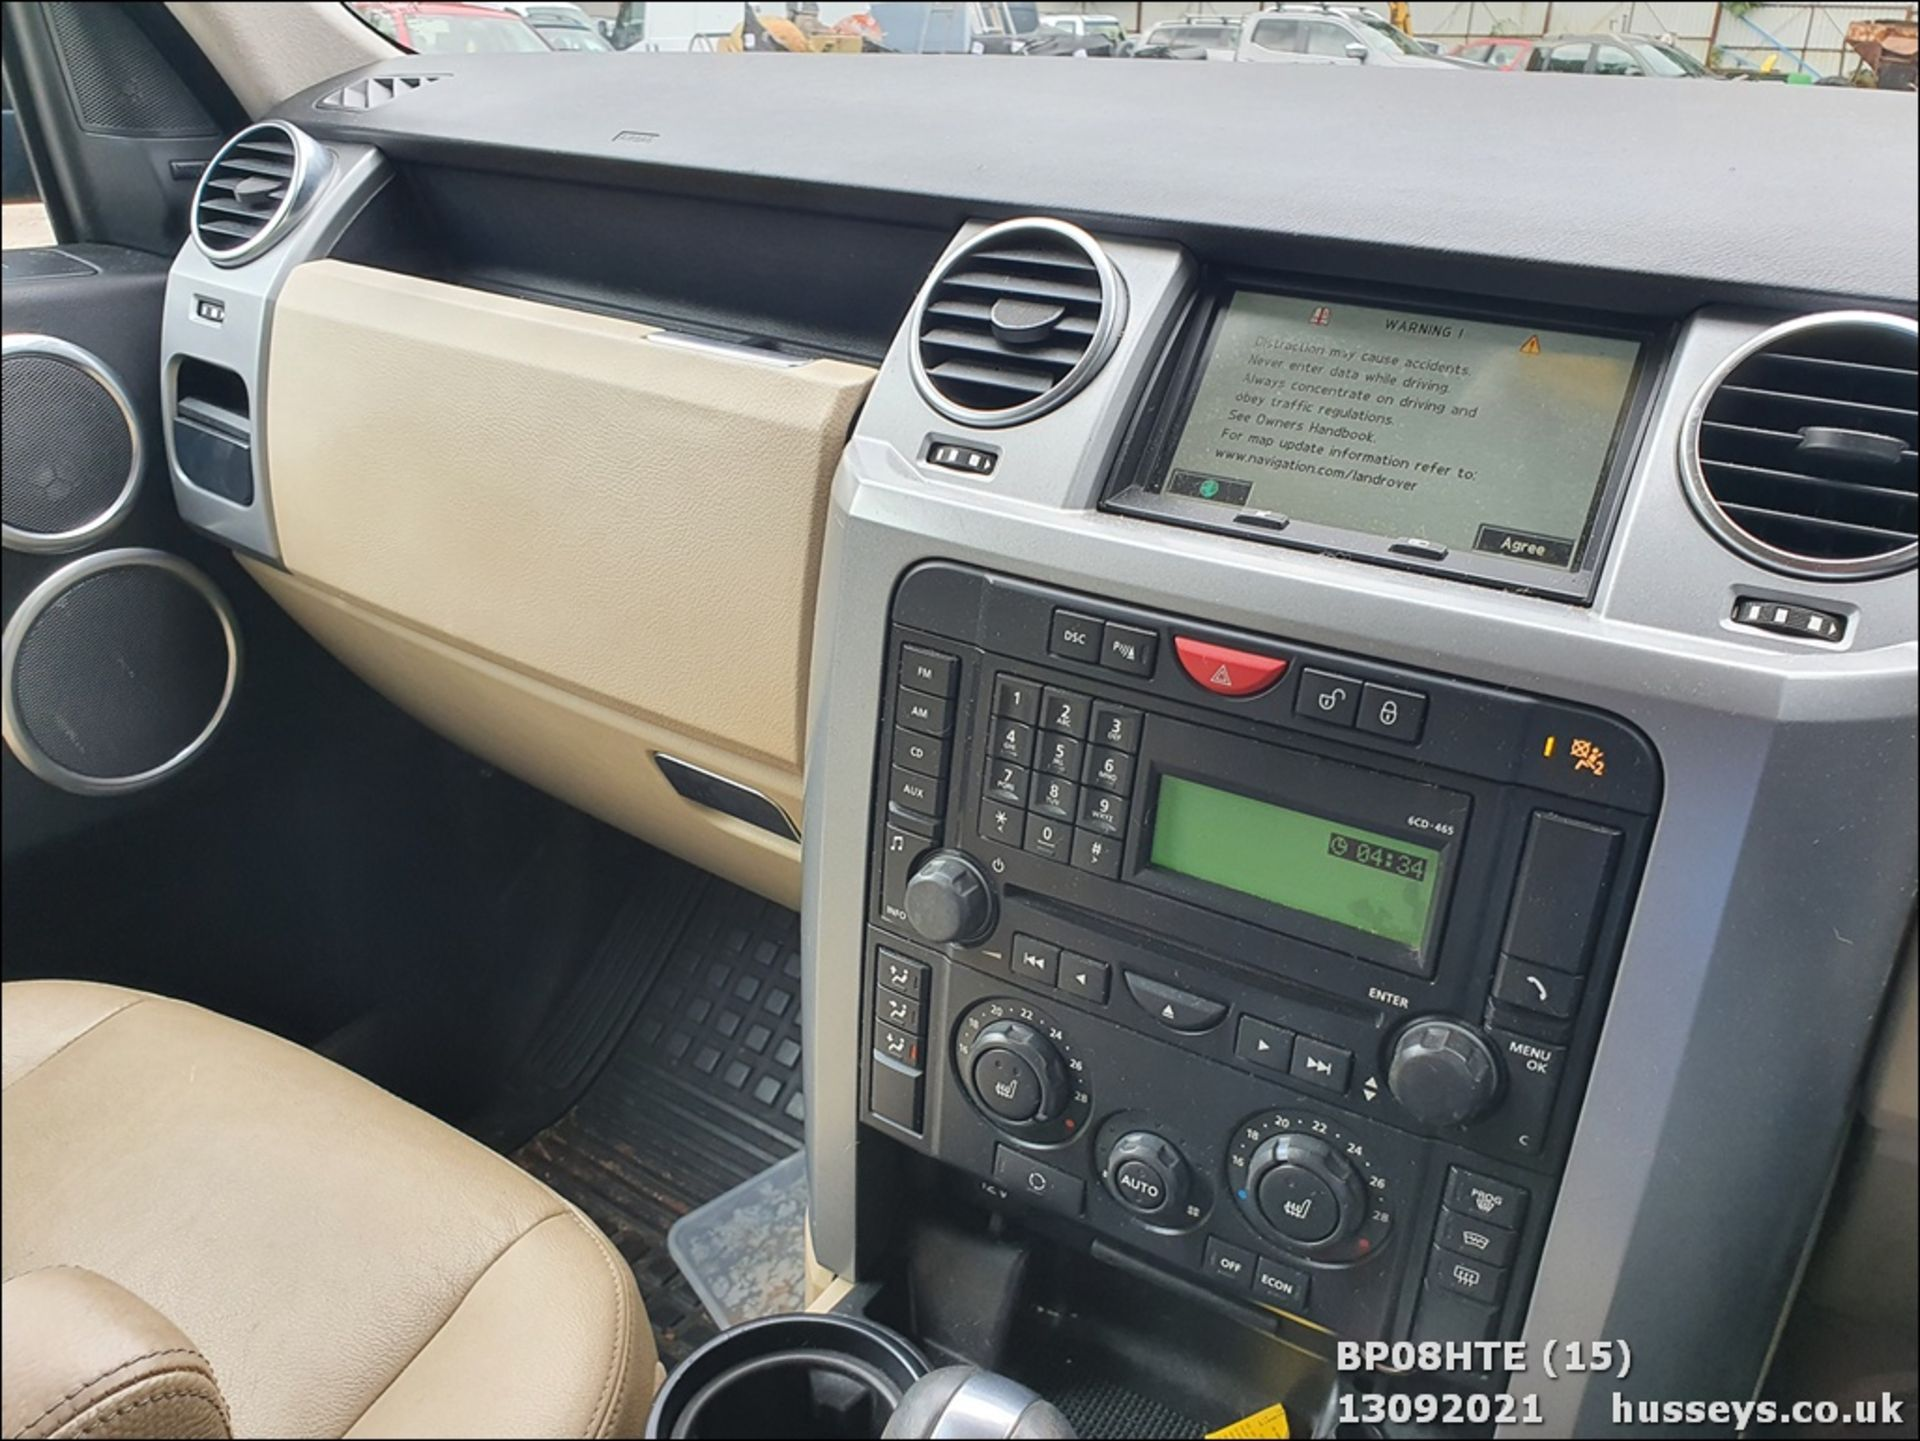 08/08 LAND ROVER DISCOVERY TDV6 SE A - 2720cc 5dr Estate (Brown, 190k) - Image 15 of 18